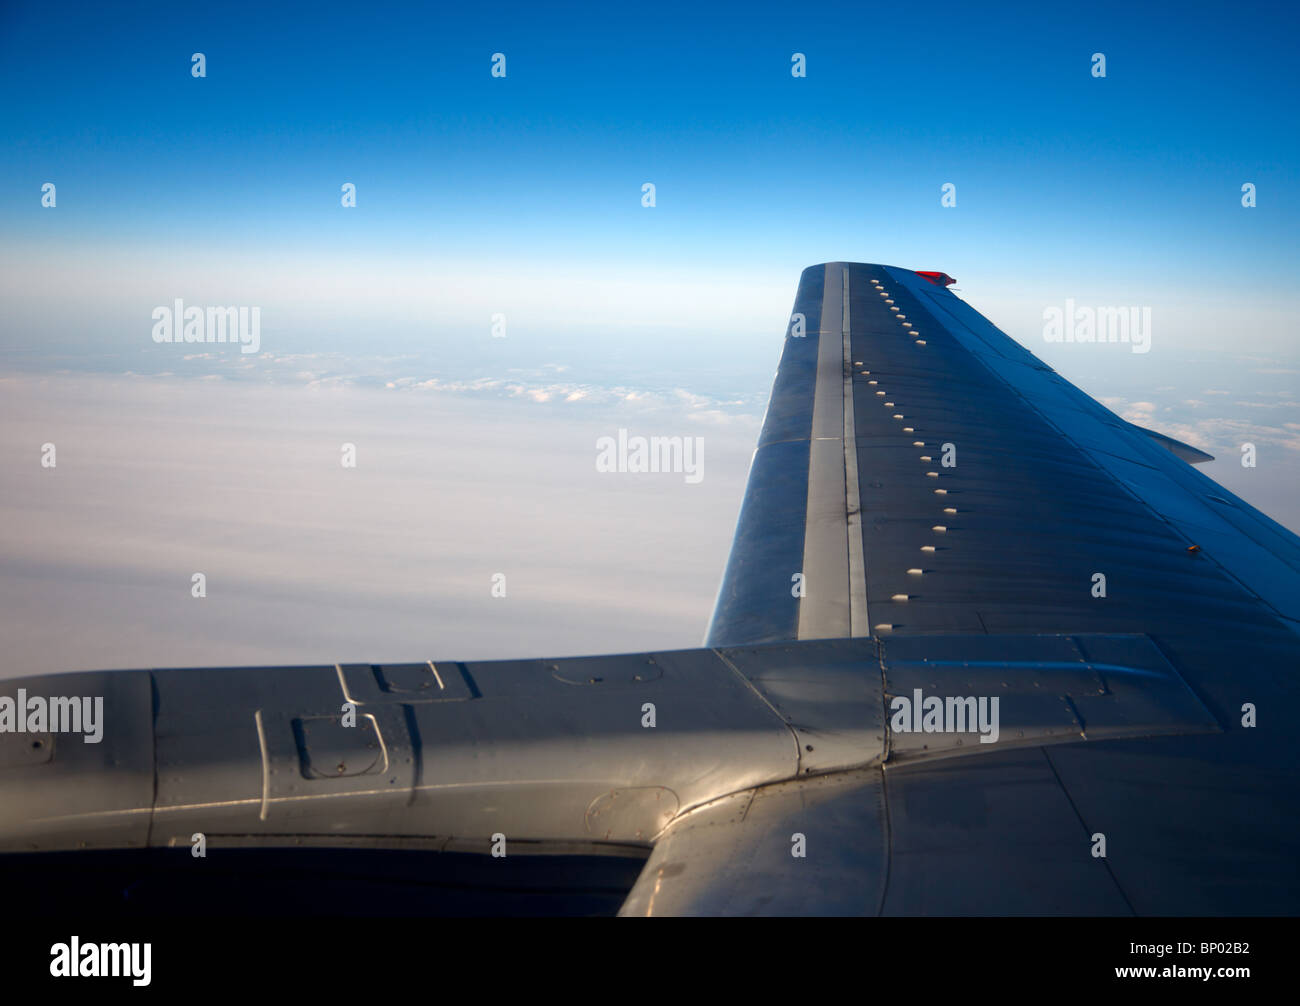 Overcast clouds - view from the window of a jet aircraft - Stock Image